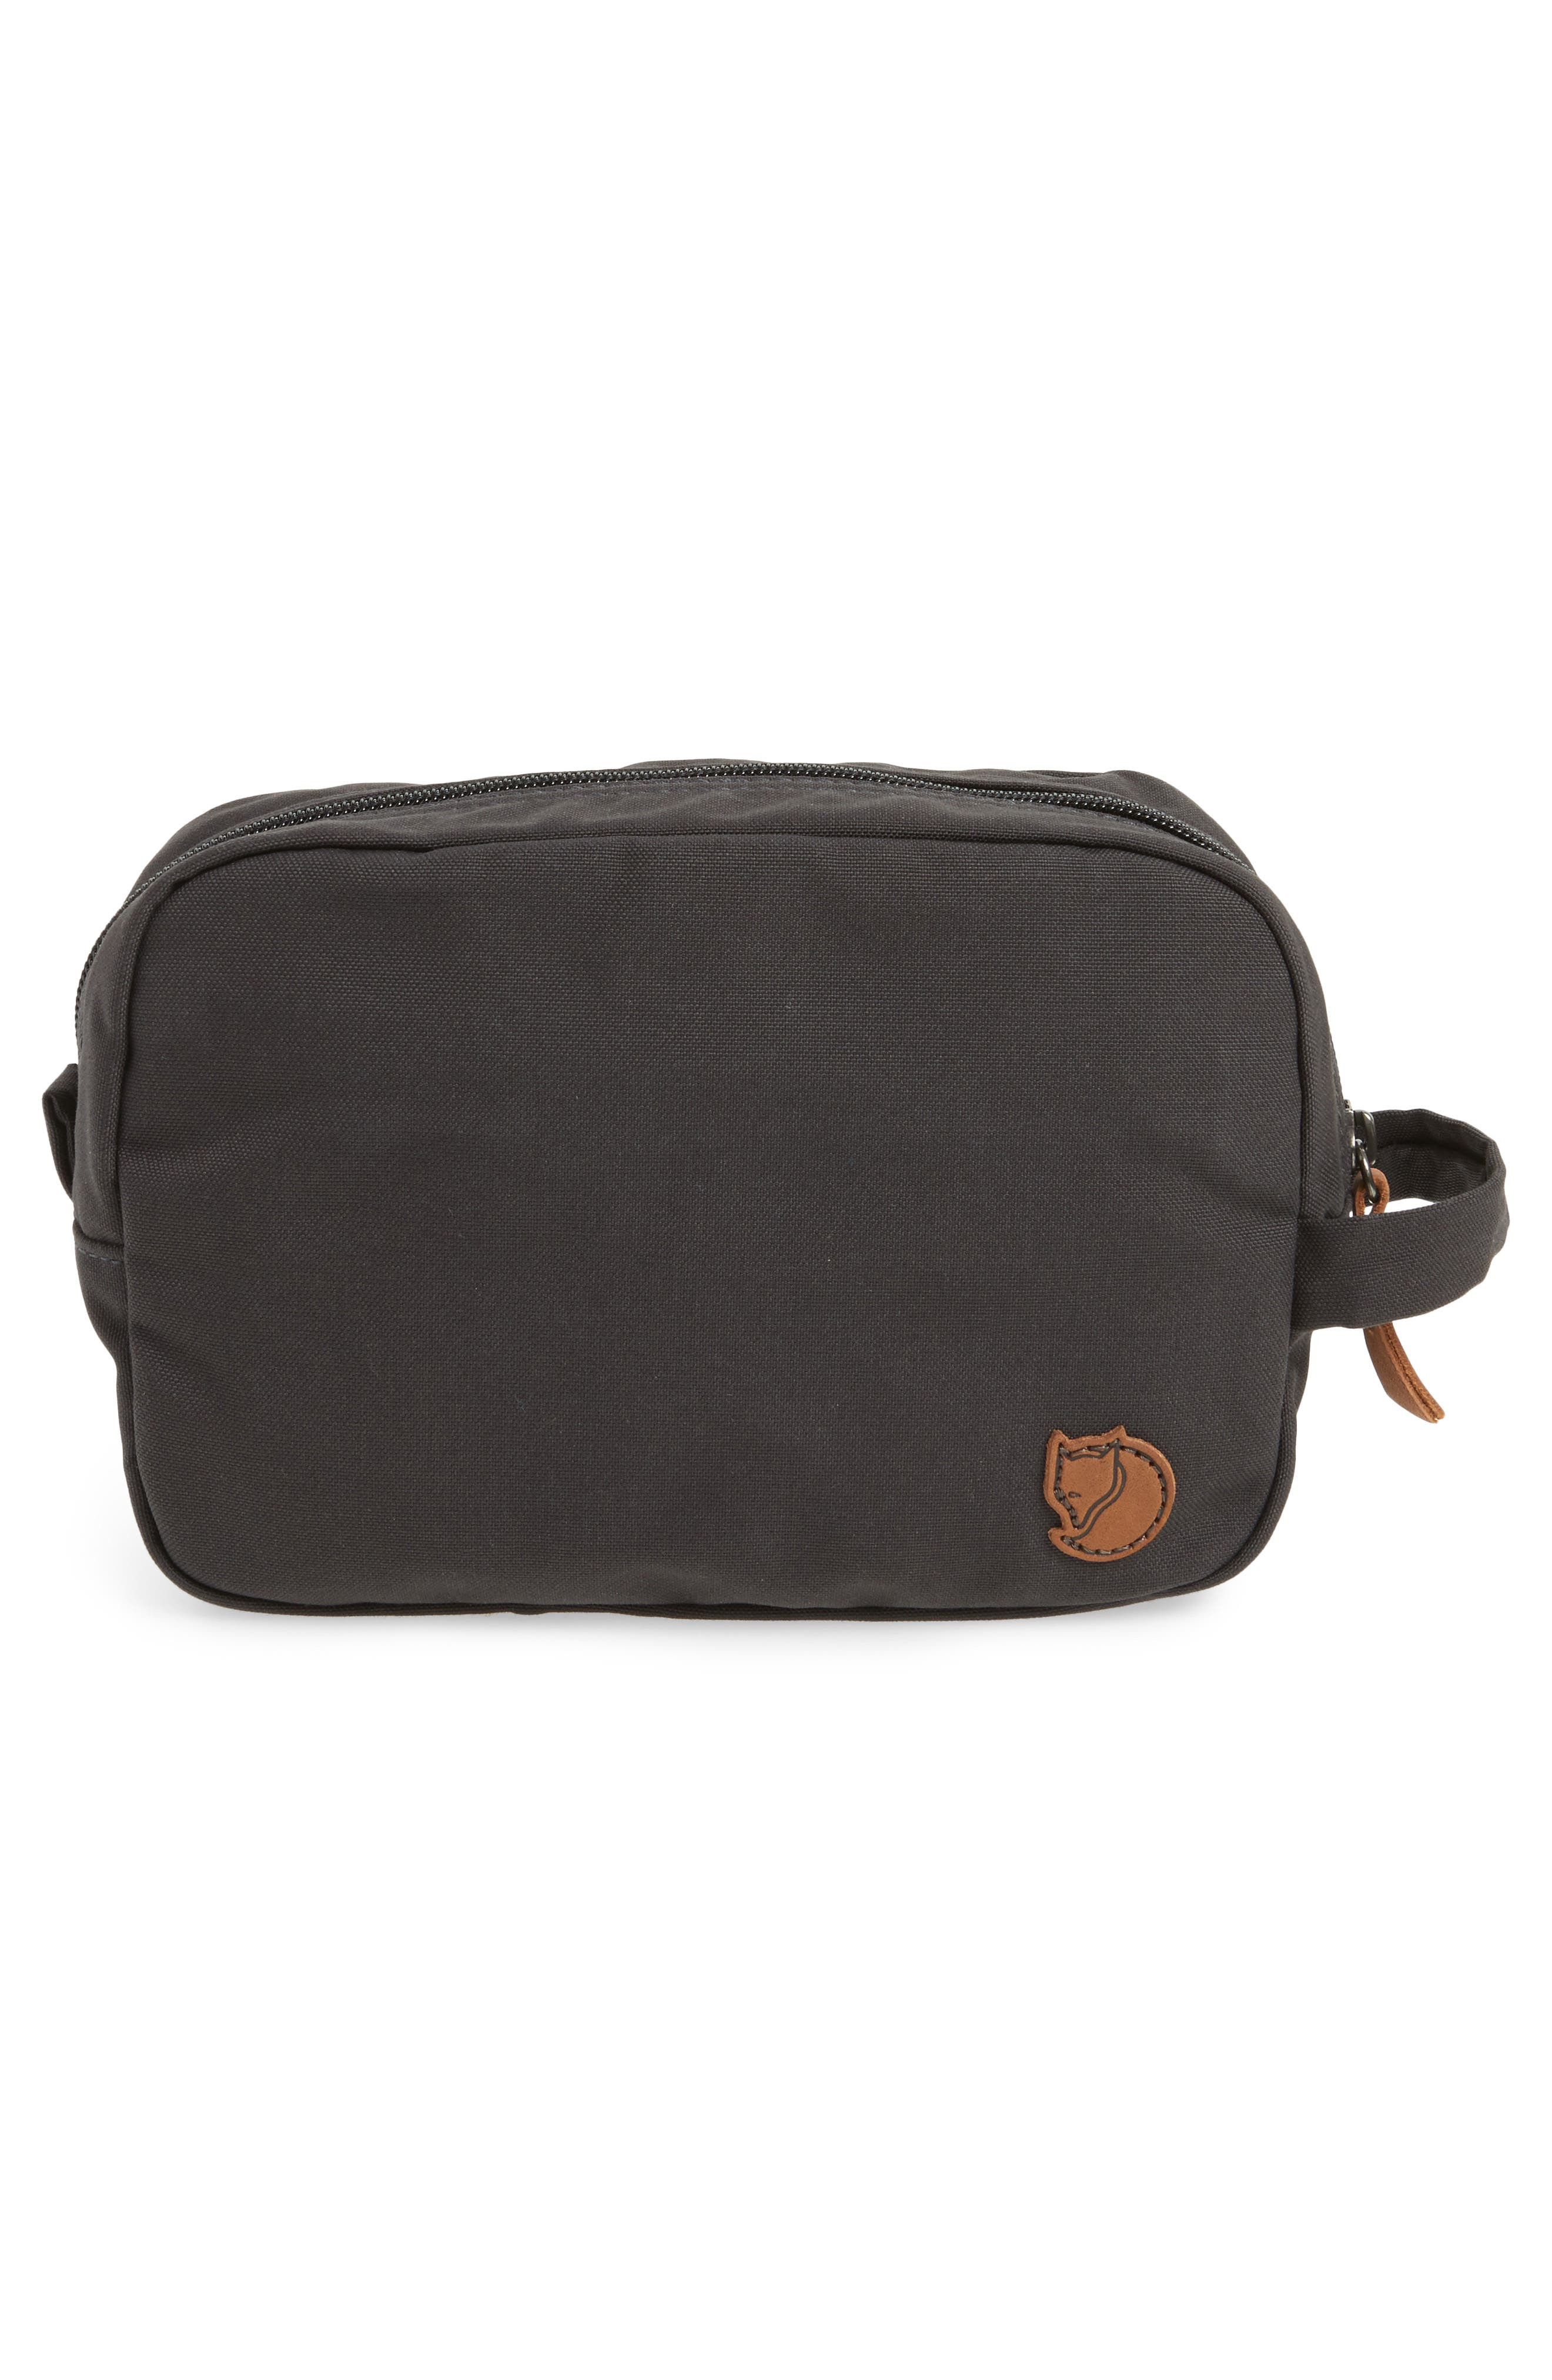 Water Resistant Gear Bag Pouch,                             Alternate thumbnail 2, color,                             DARK GREY